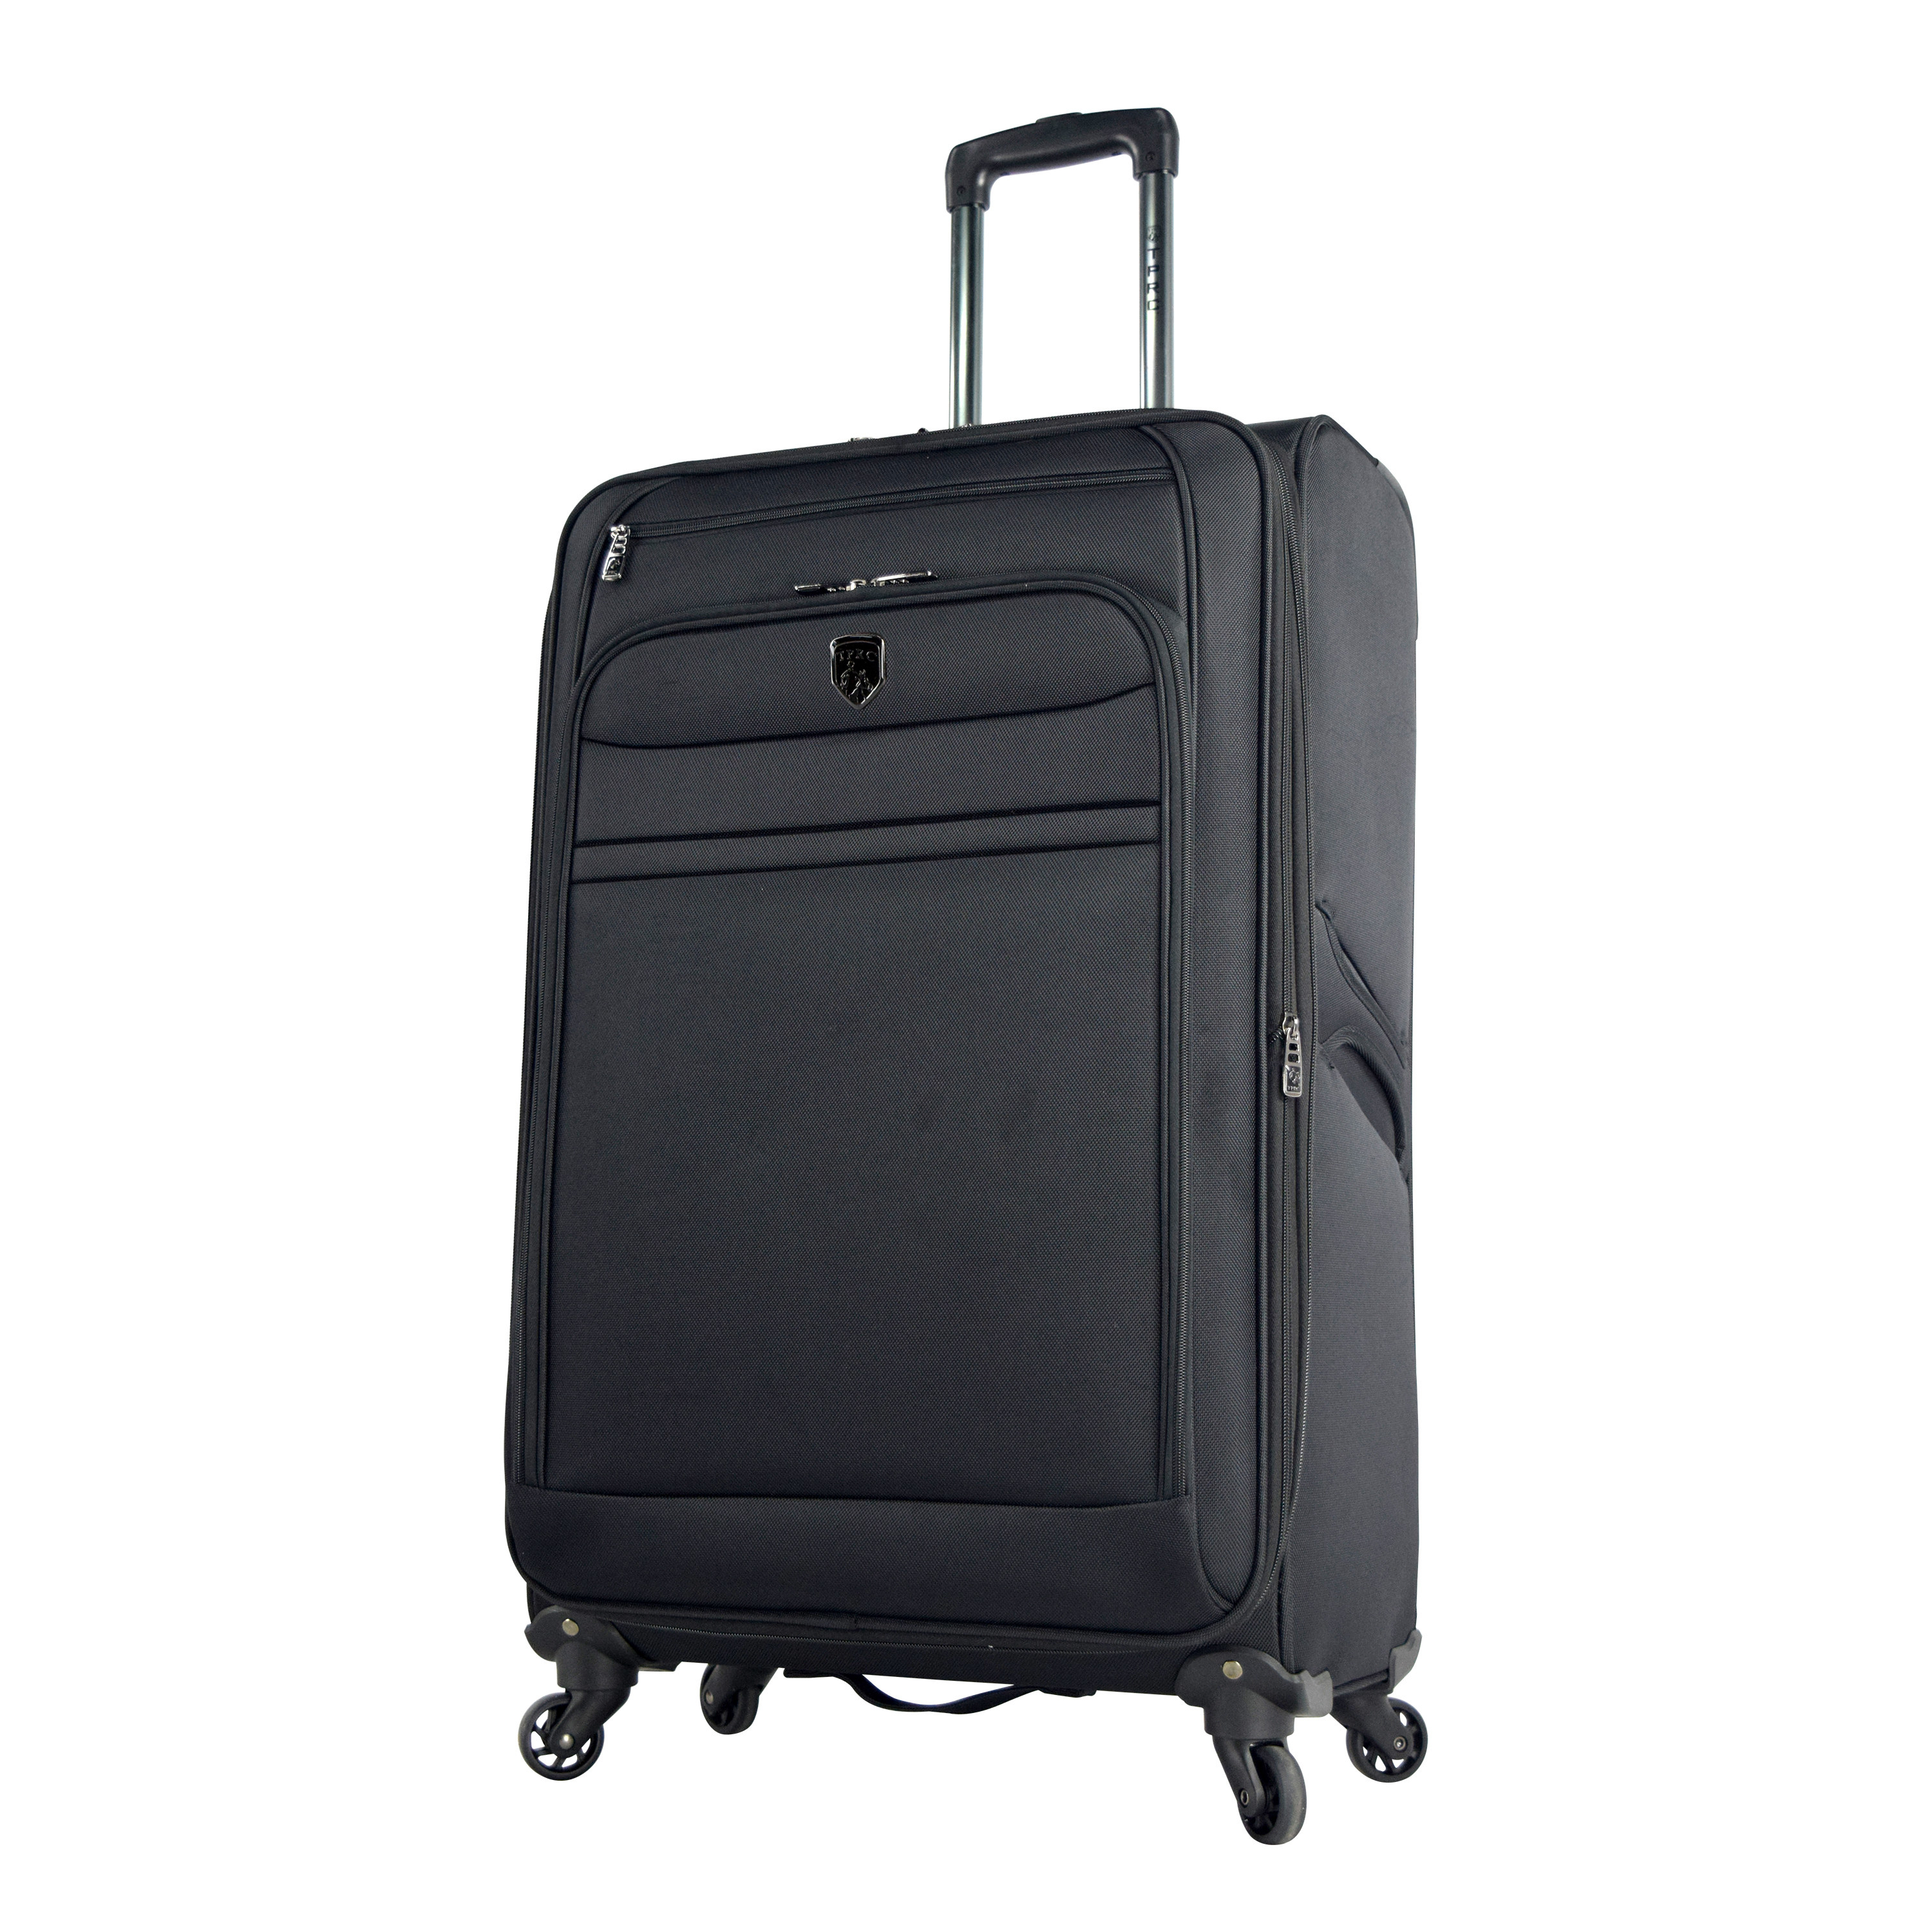 black suitcase standing up with expandable zipper and rotating wheels